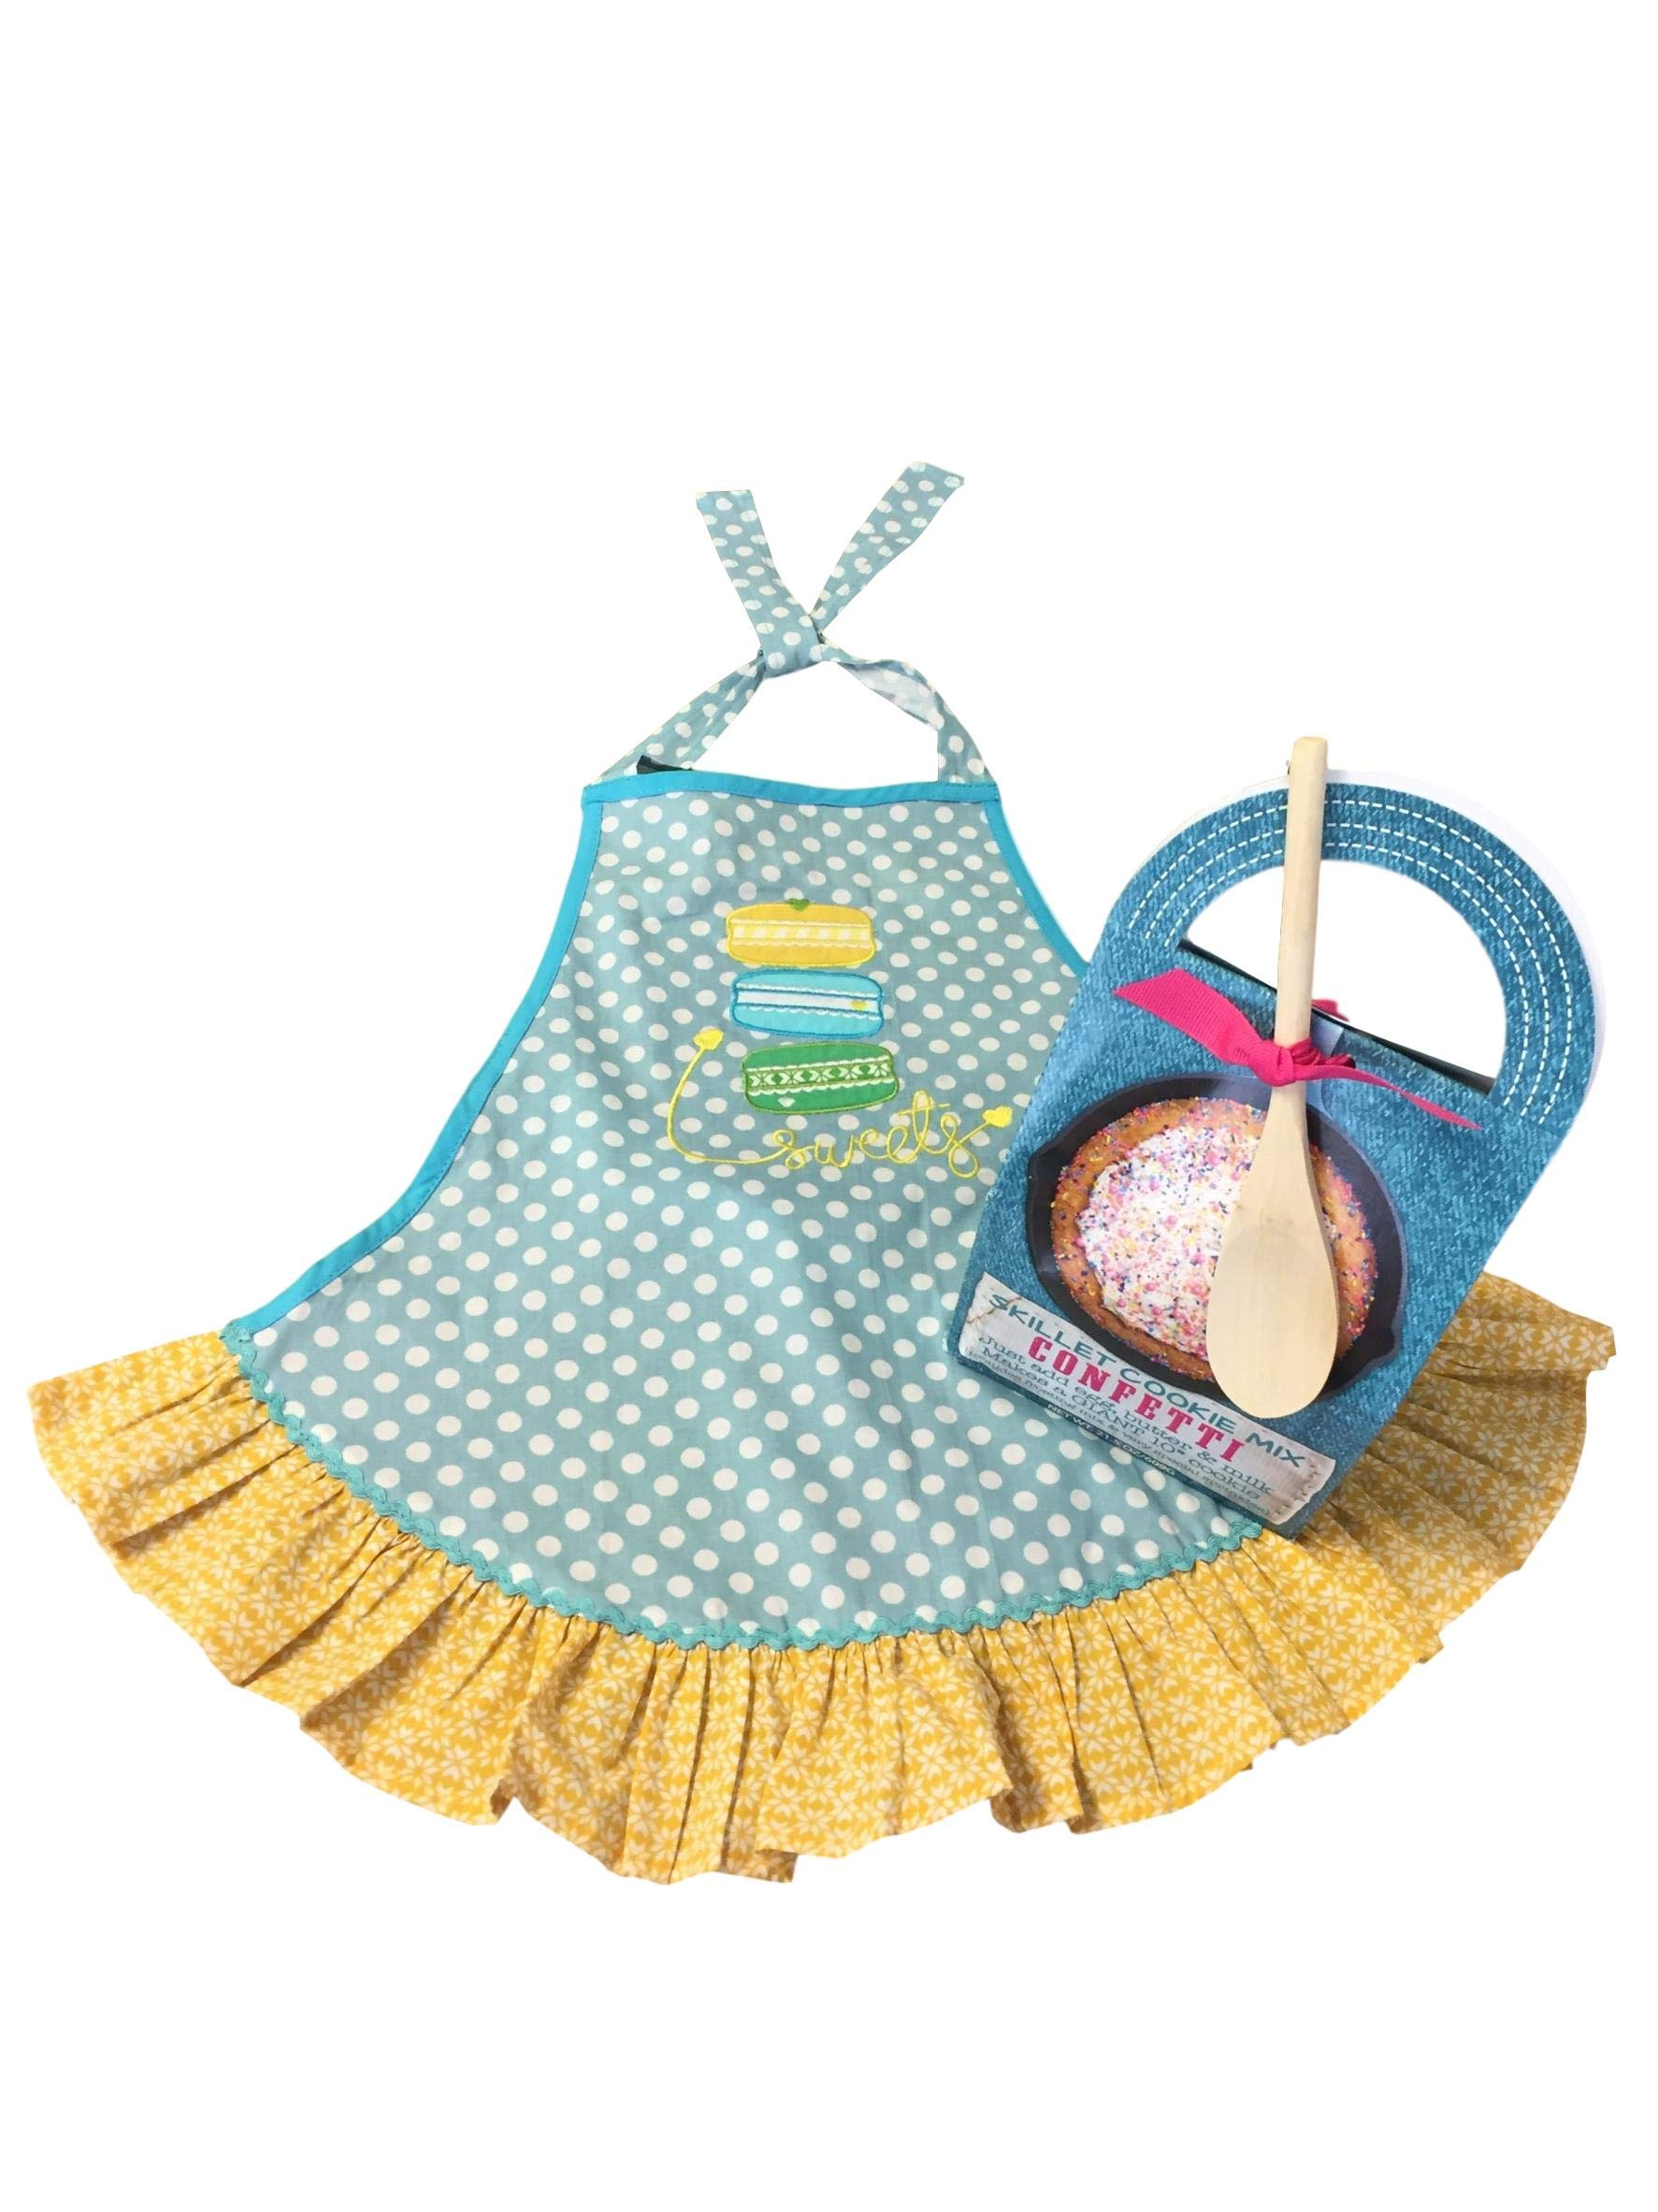 Baking Bundle with Girl's 'Sweets' Apron and Skillet Confetti Cookie Mix